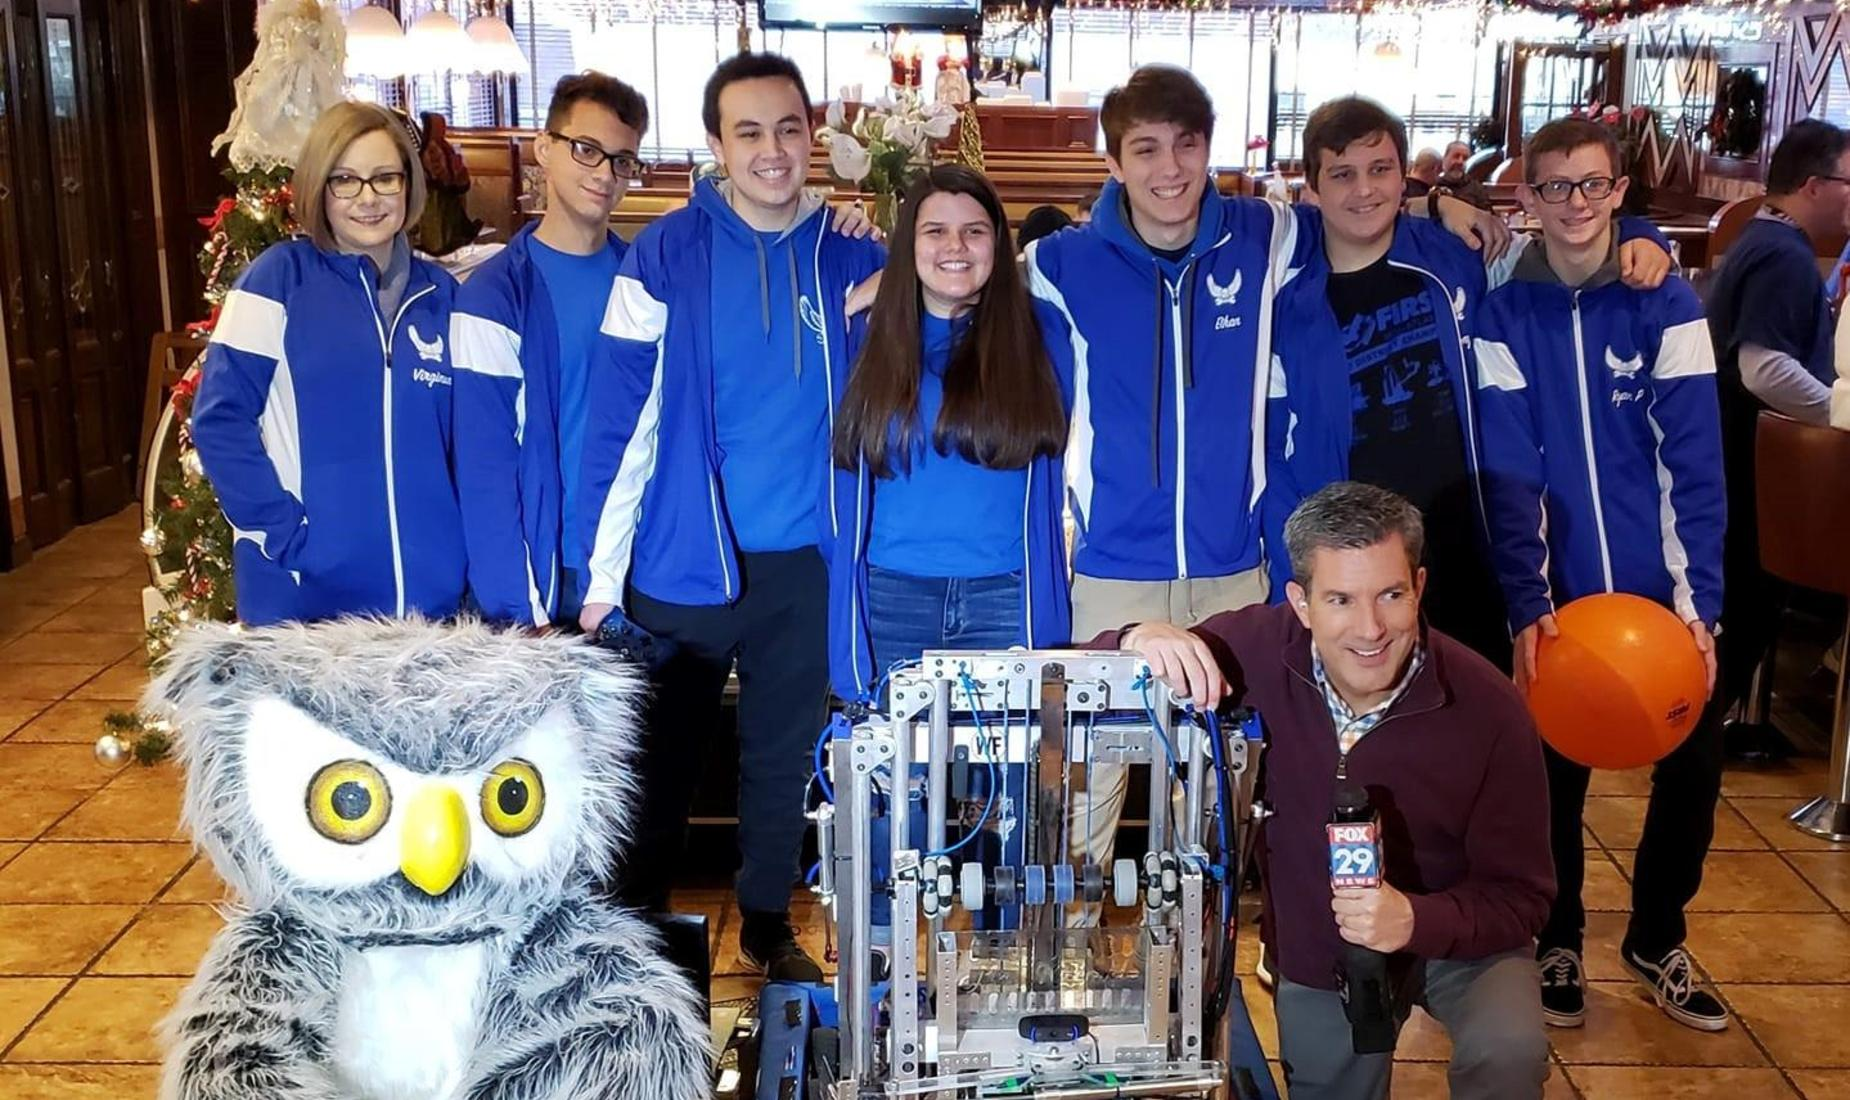 6 Members of the BHS Fightin' Robotic Owls Team and their Coach with mascot Benny the Owl and Bob Kelly from Fox 29